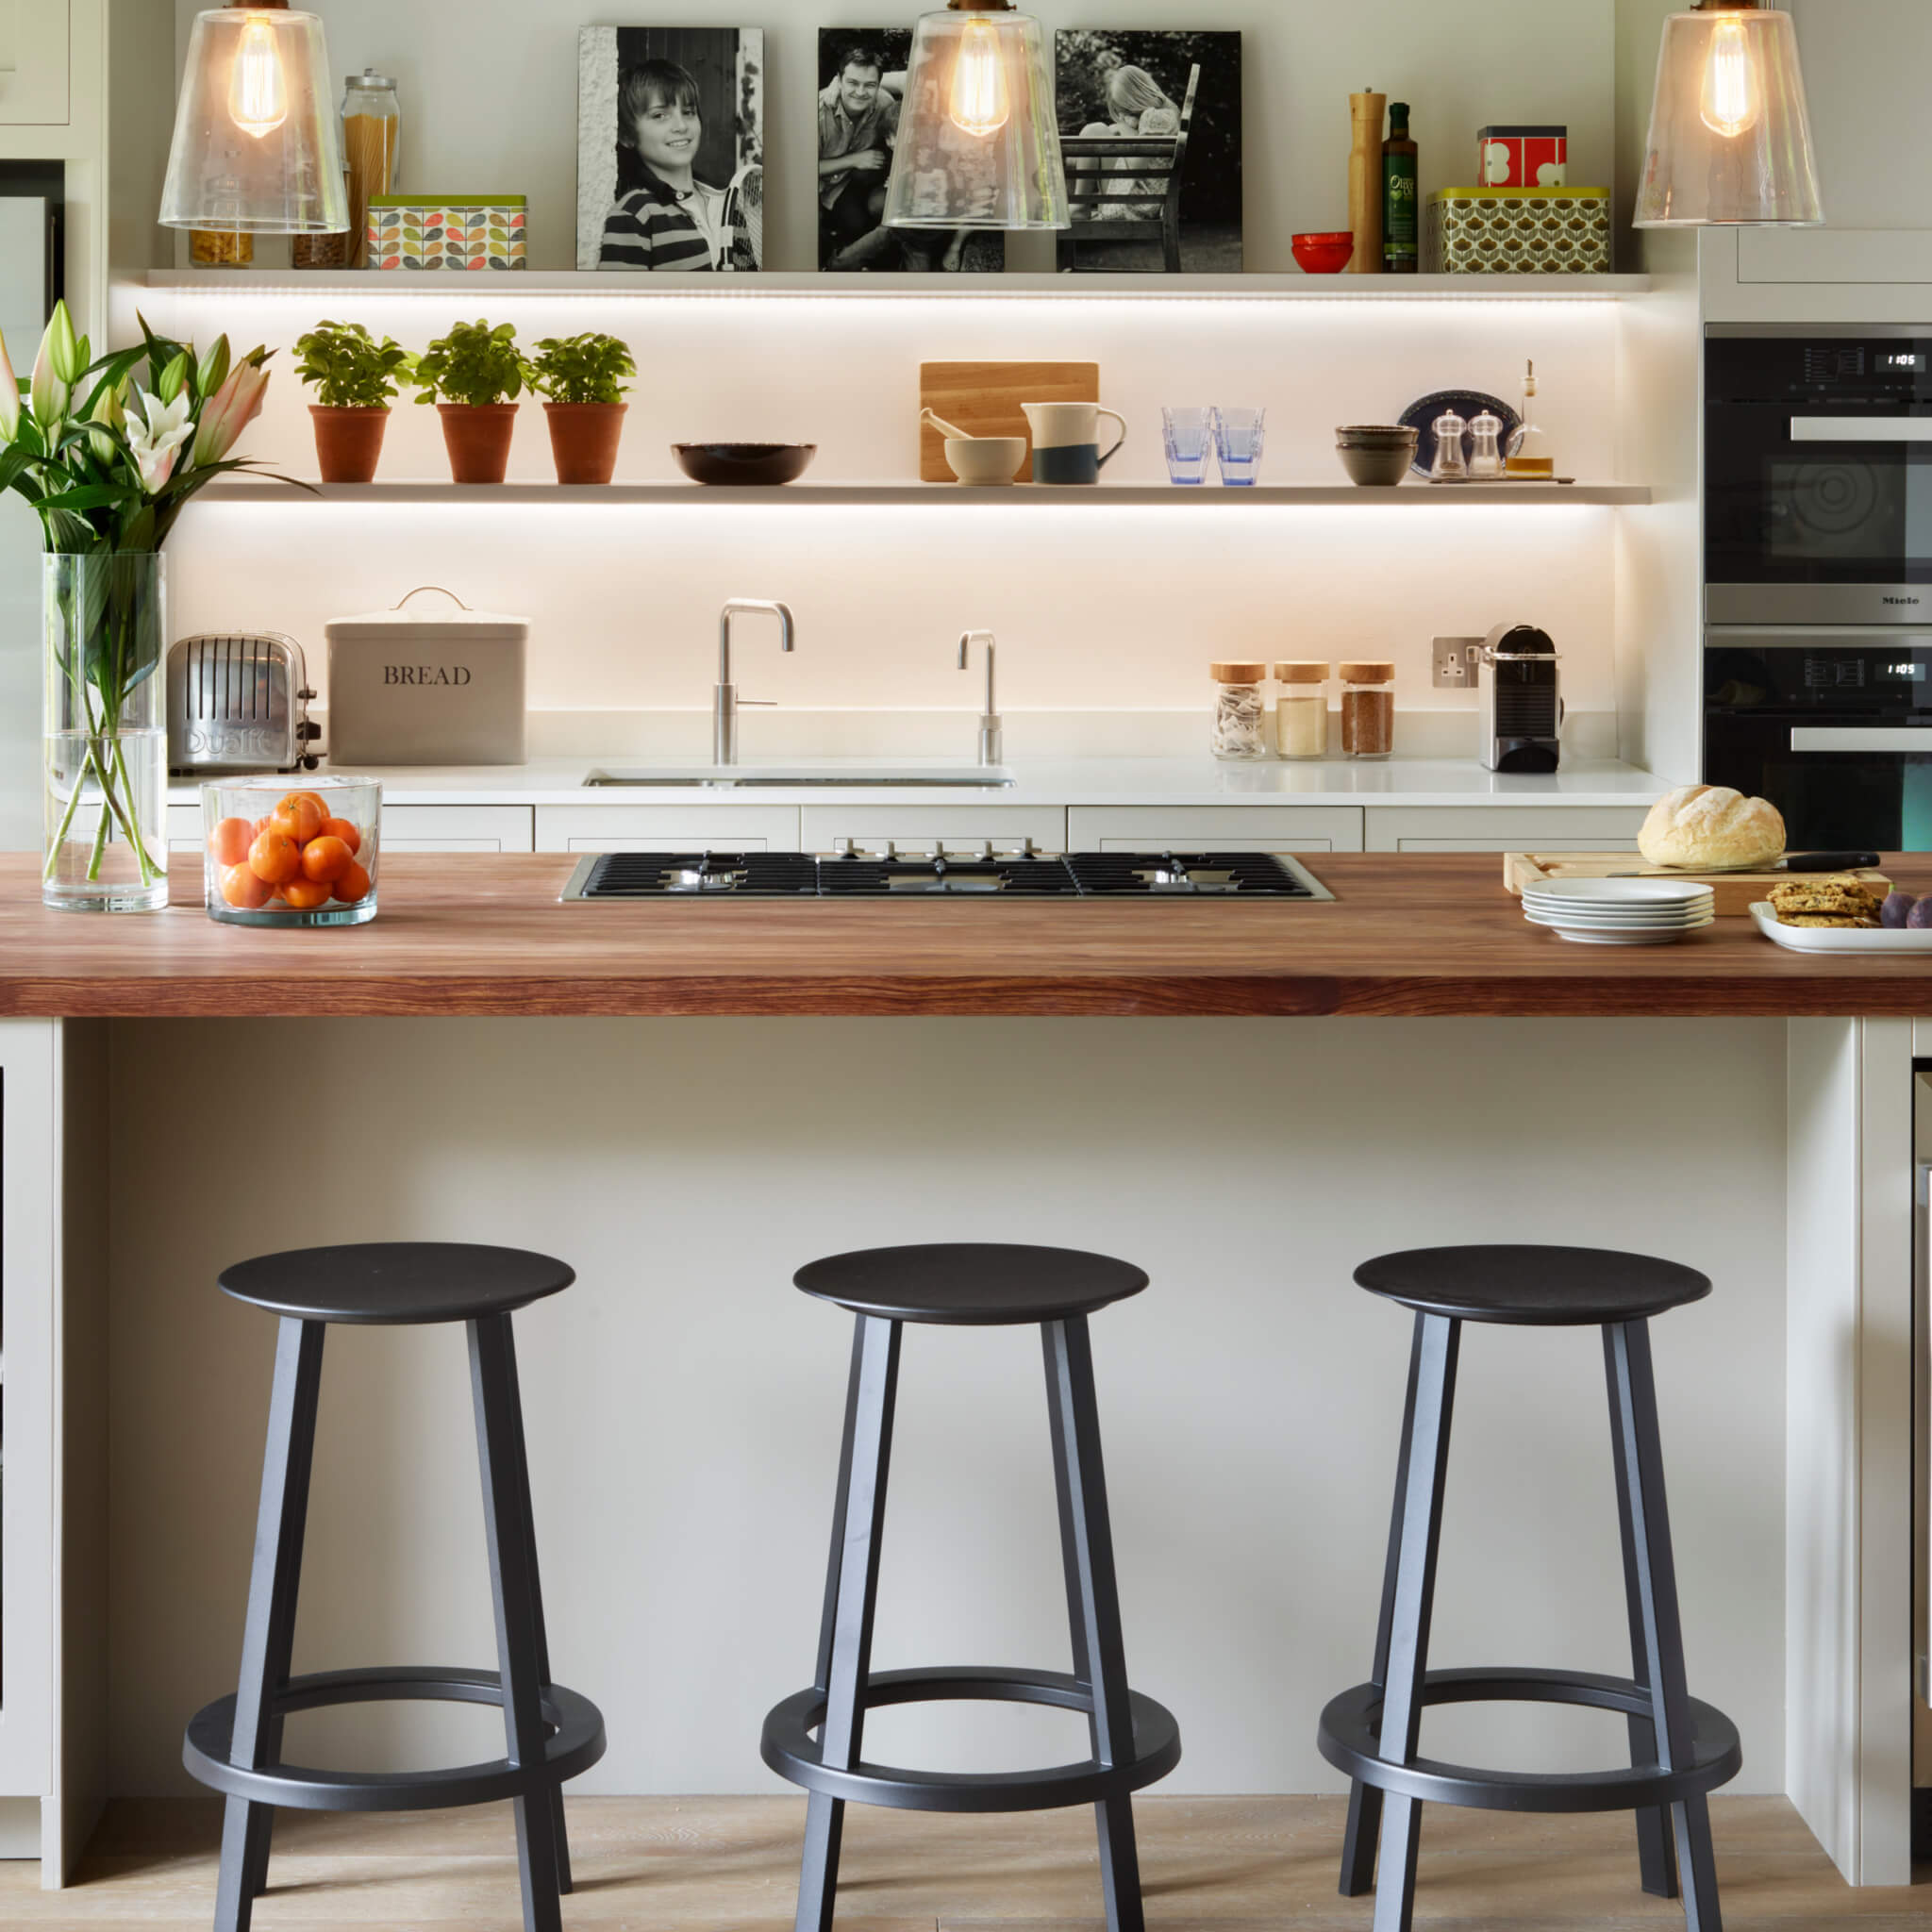 Light Up Your Space Lighting In Your New Kitchen